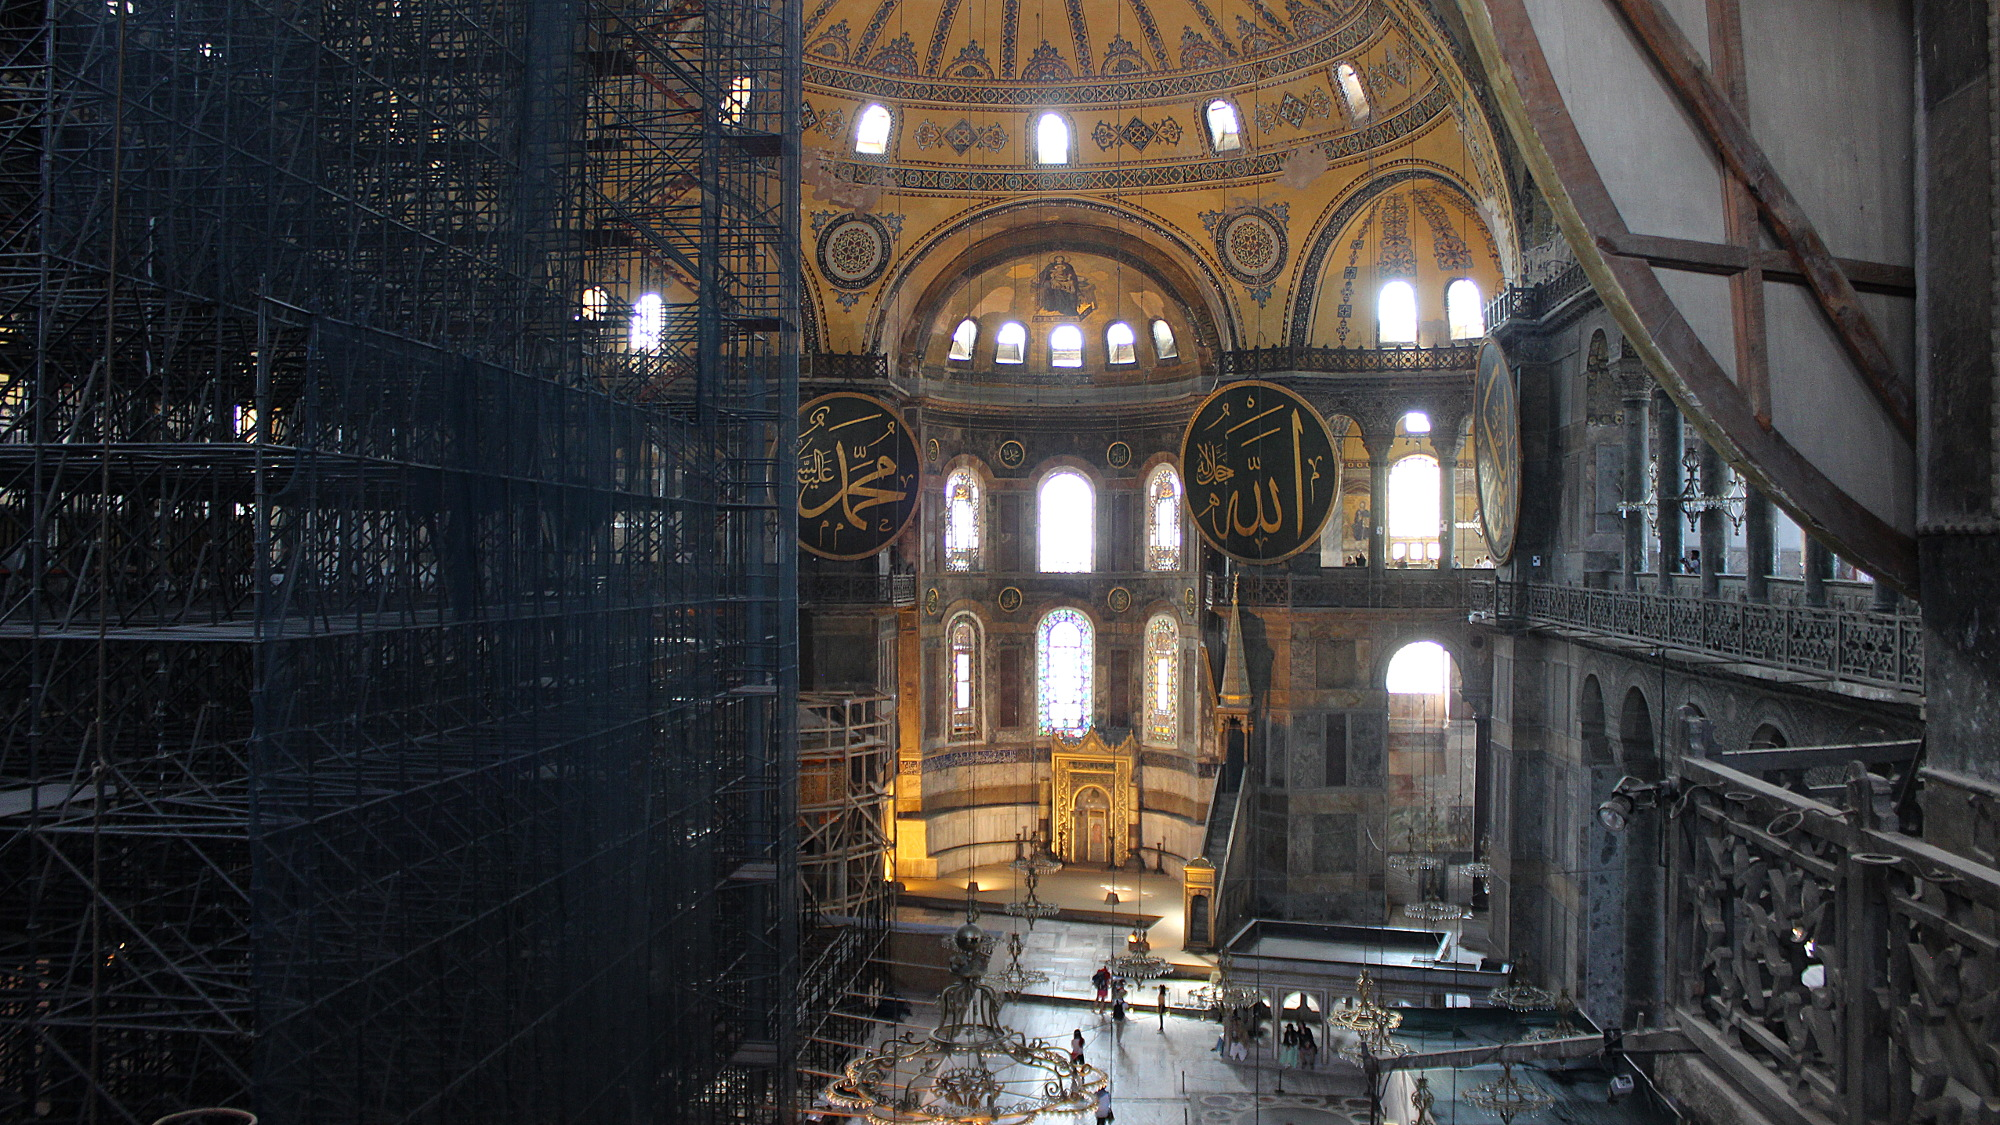 Hagia Sofia interior from balcony under reconstruction.